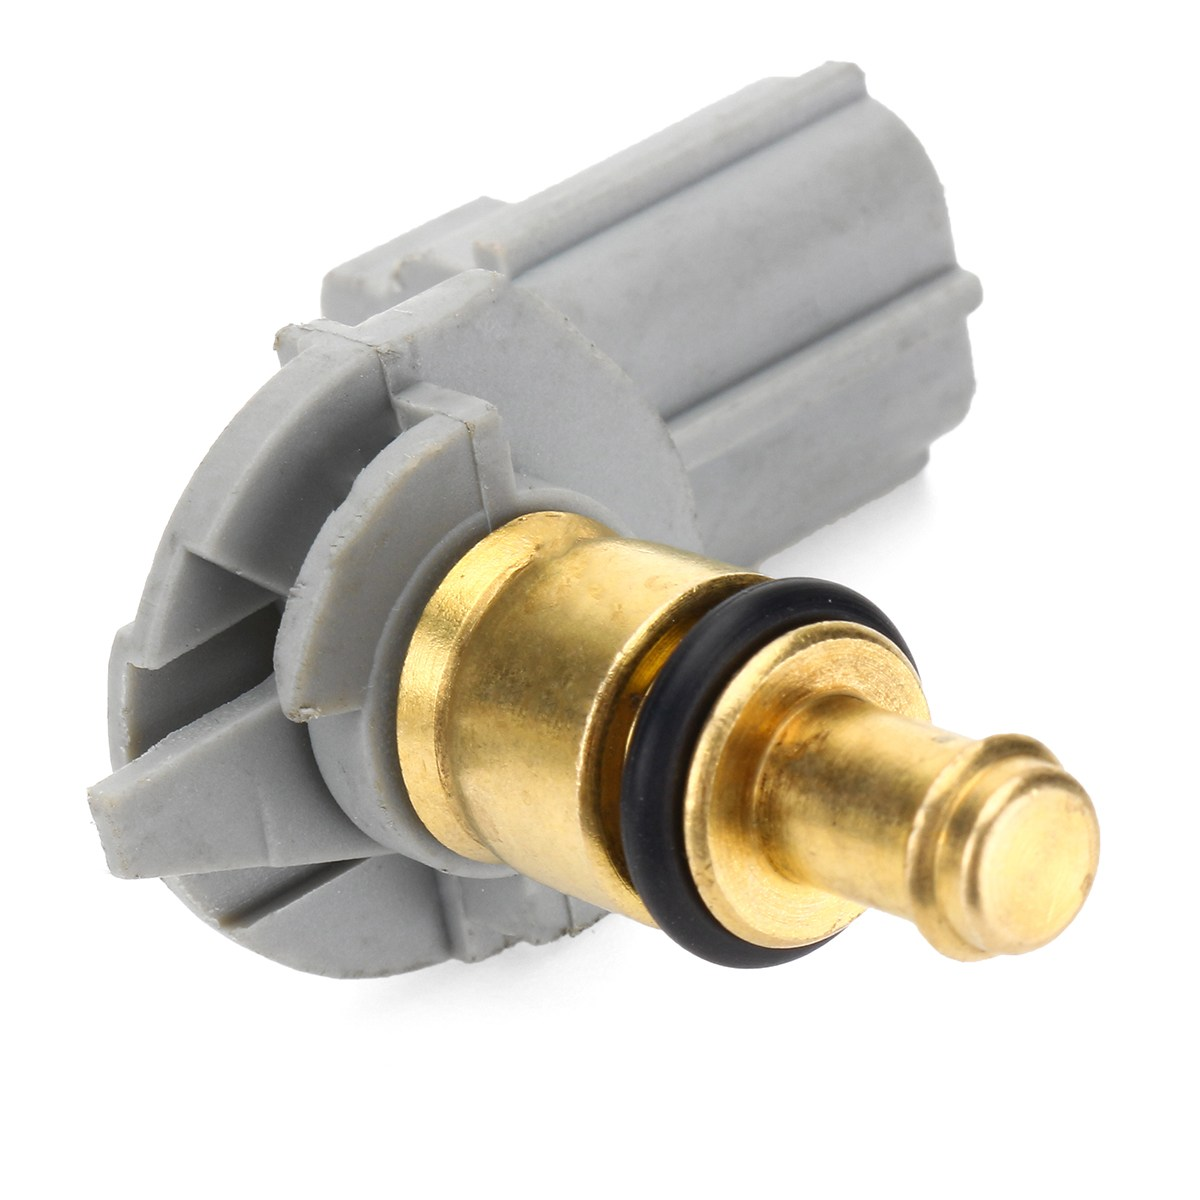 Coolant Temperature Sensor For Ford/Focus/Fusion/Jaguar/Lincoln/Mazda/Mercury Escape Taurus XJ XF XFR Mariner Milan Sable